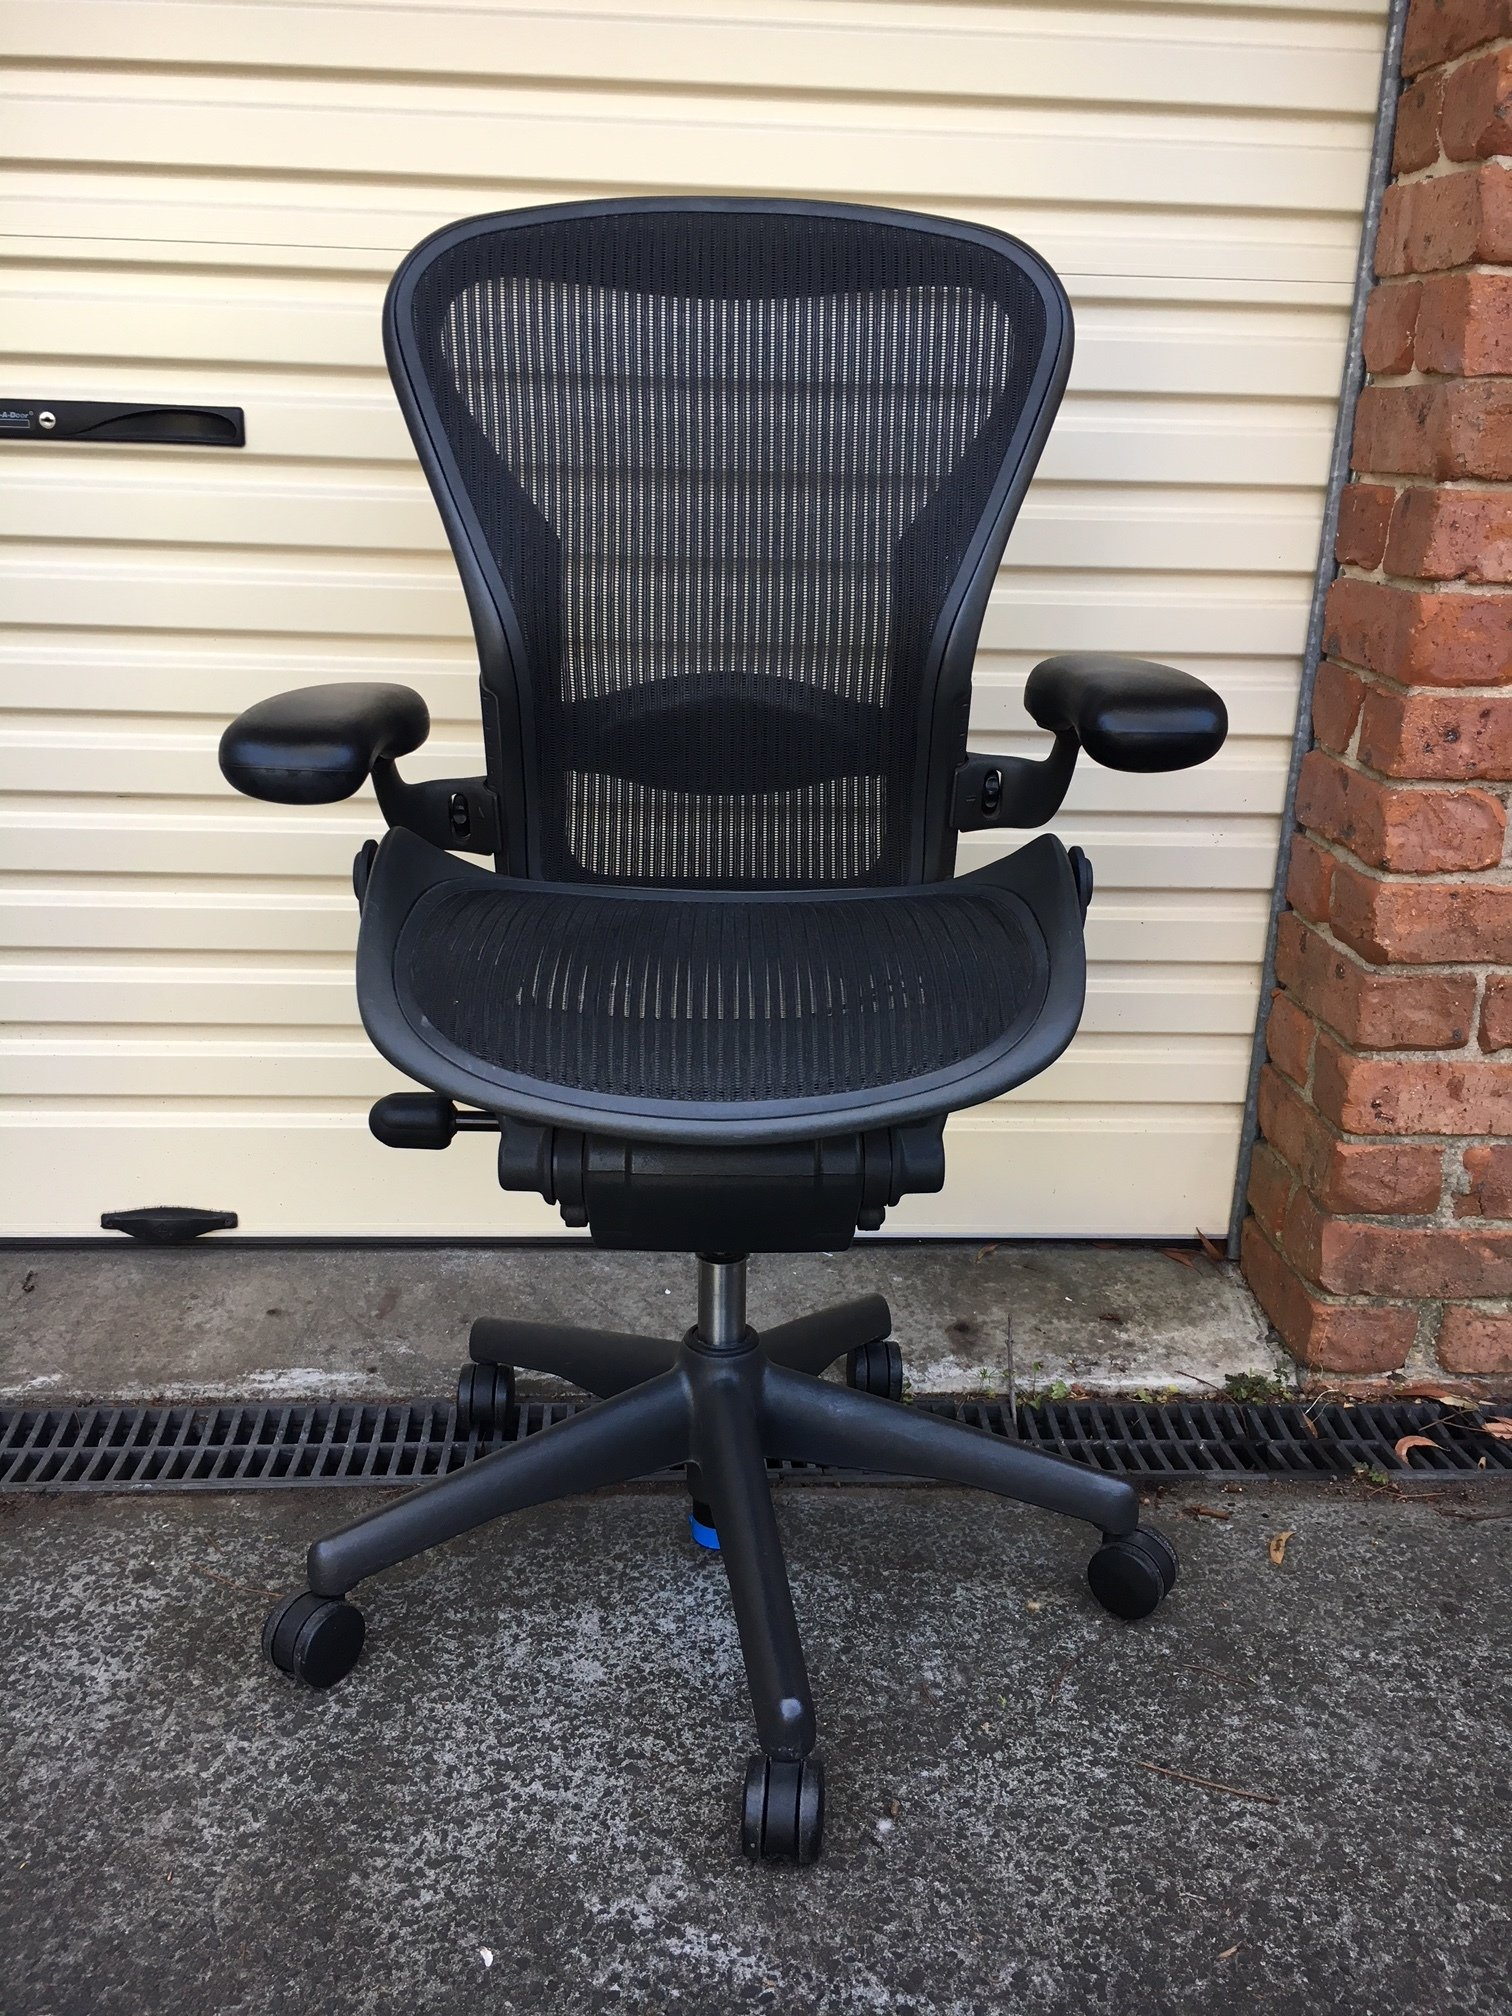 Office Chairs Amp Replacement Parts Australia The Chair